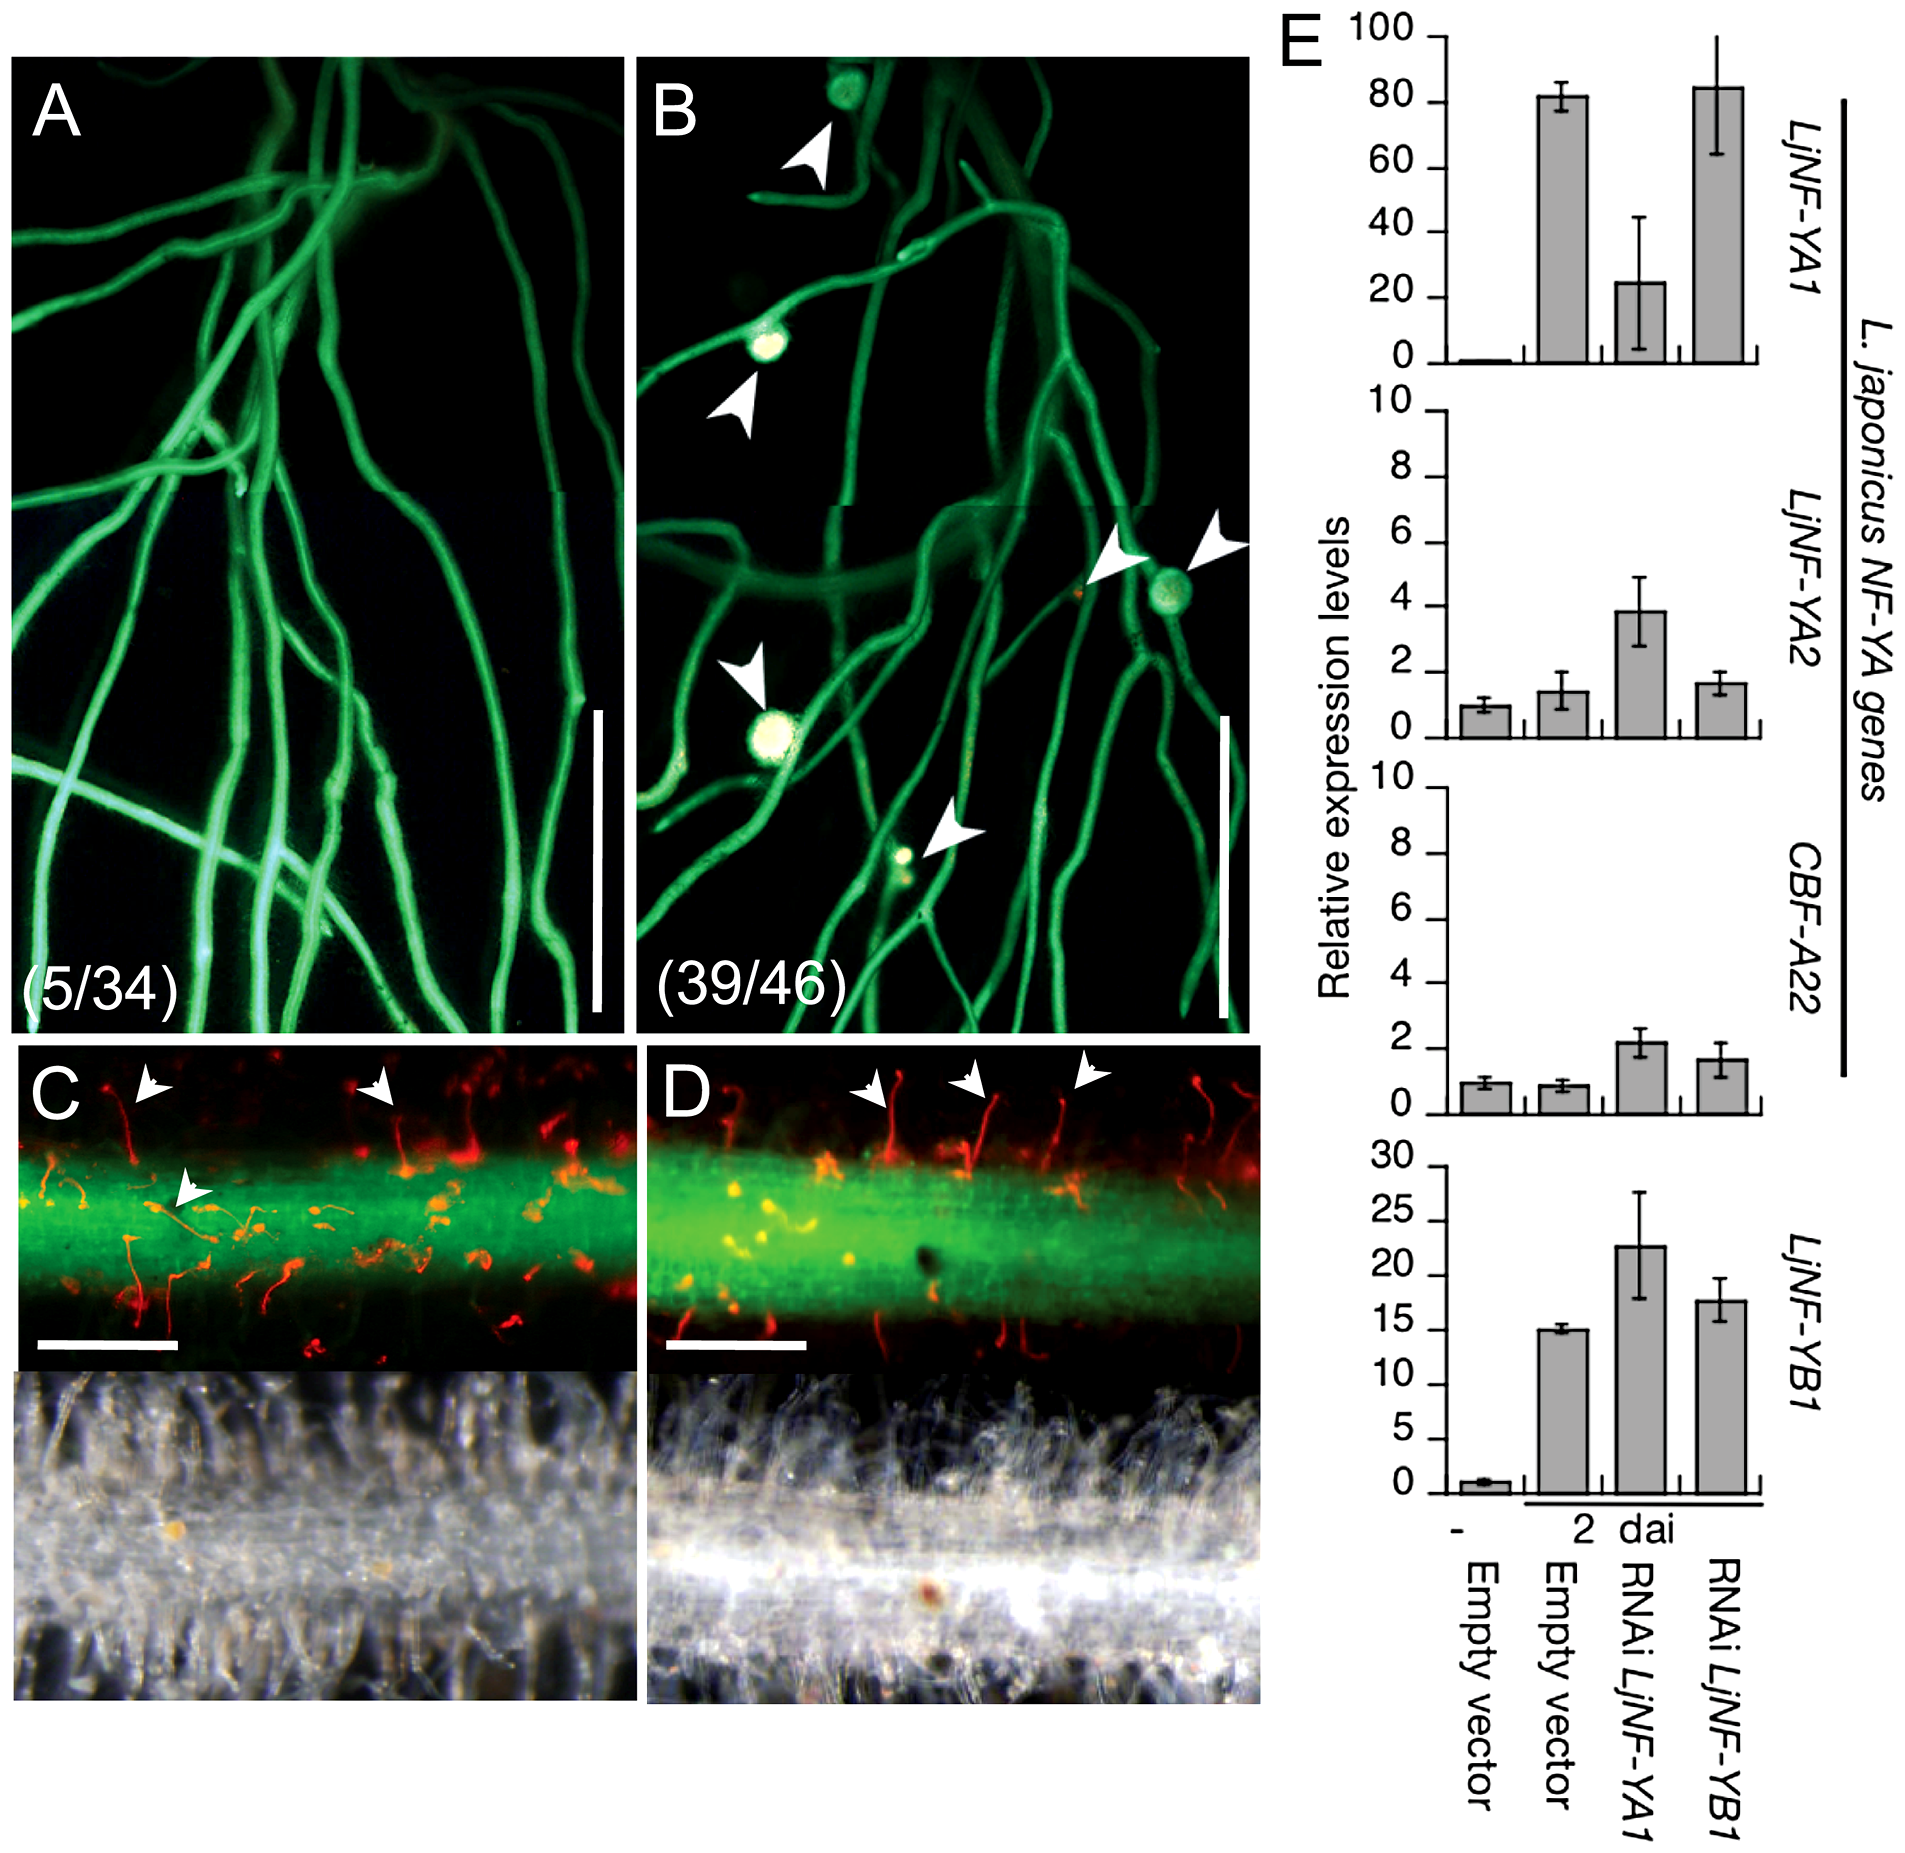 Inhibition of root nodule development by the knockdown of <i>LjNF-YA1</i>.